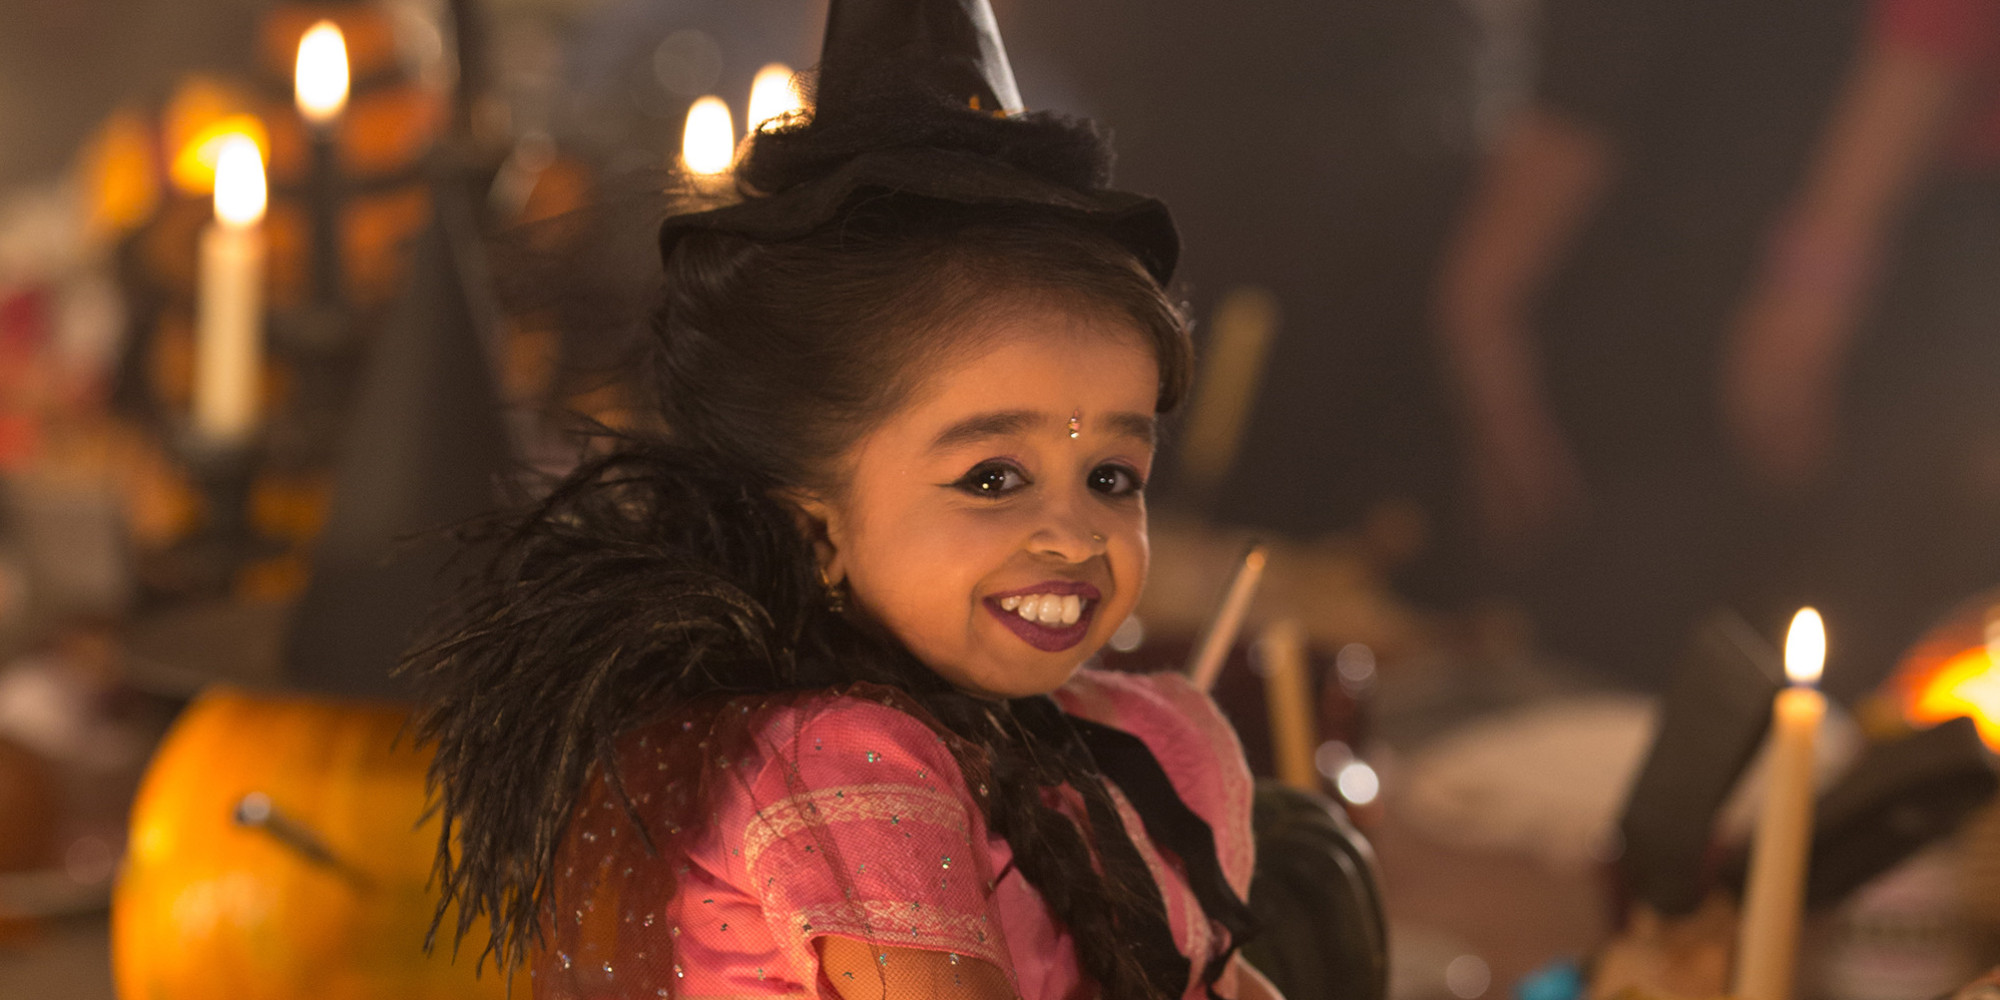 jyoti amge wikijyoti amge american horror story, jyoti amge photo, jyoti amge instagram, jyoti amge wikipedia, jyoti amge, jyoti amge husband, jyoti amge married, jyoti amge interview, jyoti amge age, jyoti amge biography, jyoti amge boyfriend, jyoti amge youtube, jyoti amge wiki, jyoti amge 2015, jyoti amge video, jyoti amge parents, jyoti amge facebook, jyoti amge twitter, jyoti amge voice, jyoti amge bigg boss